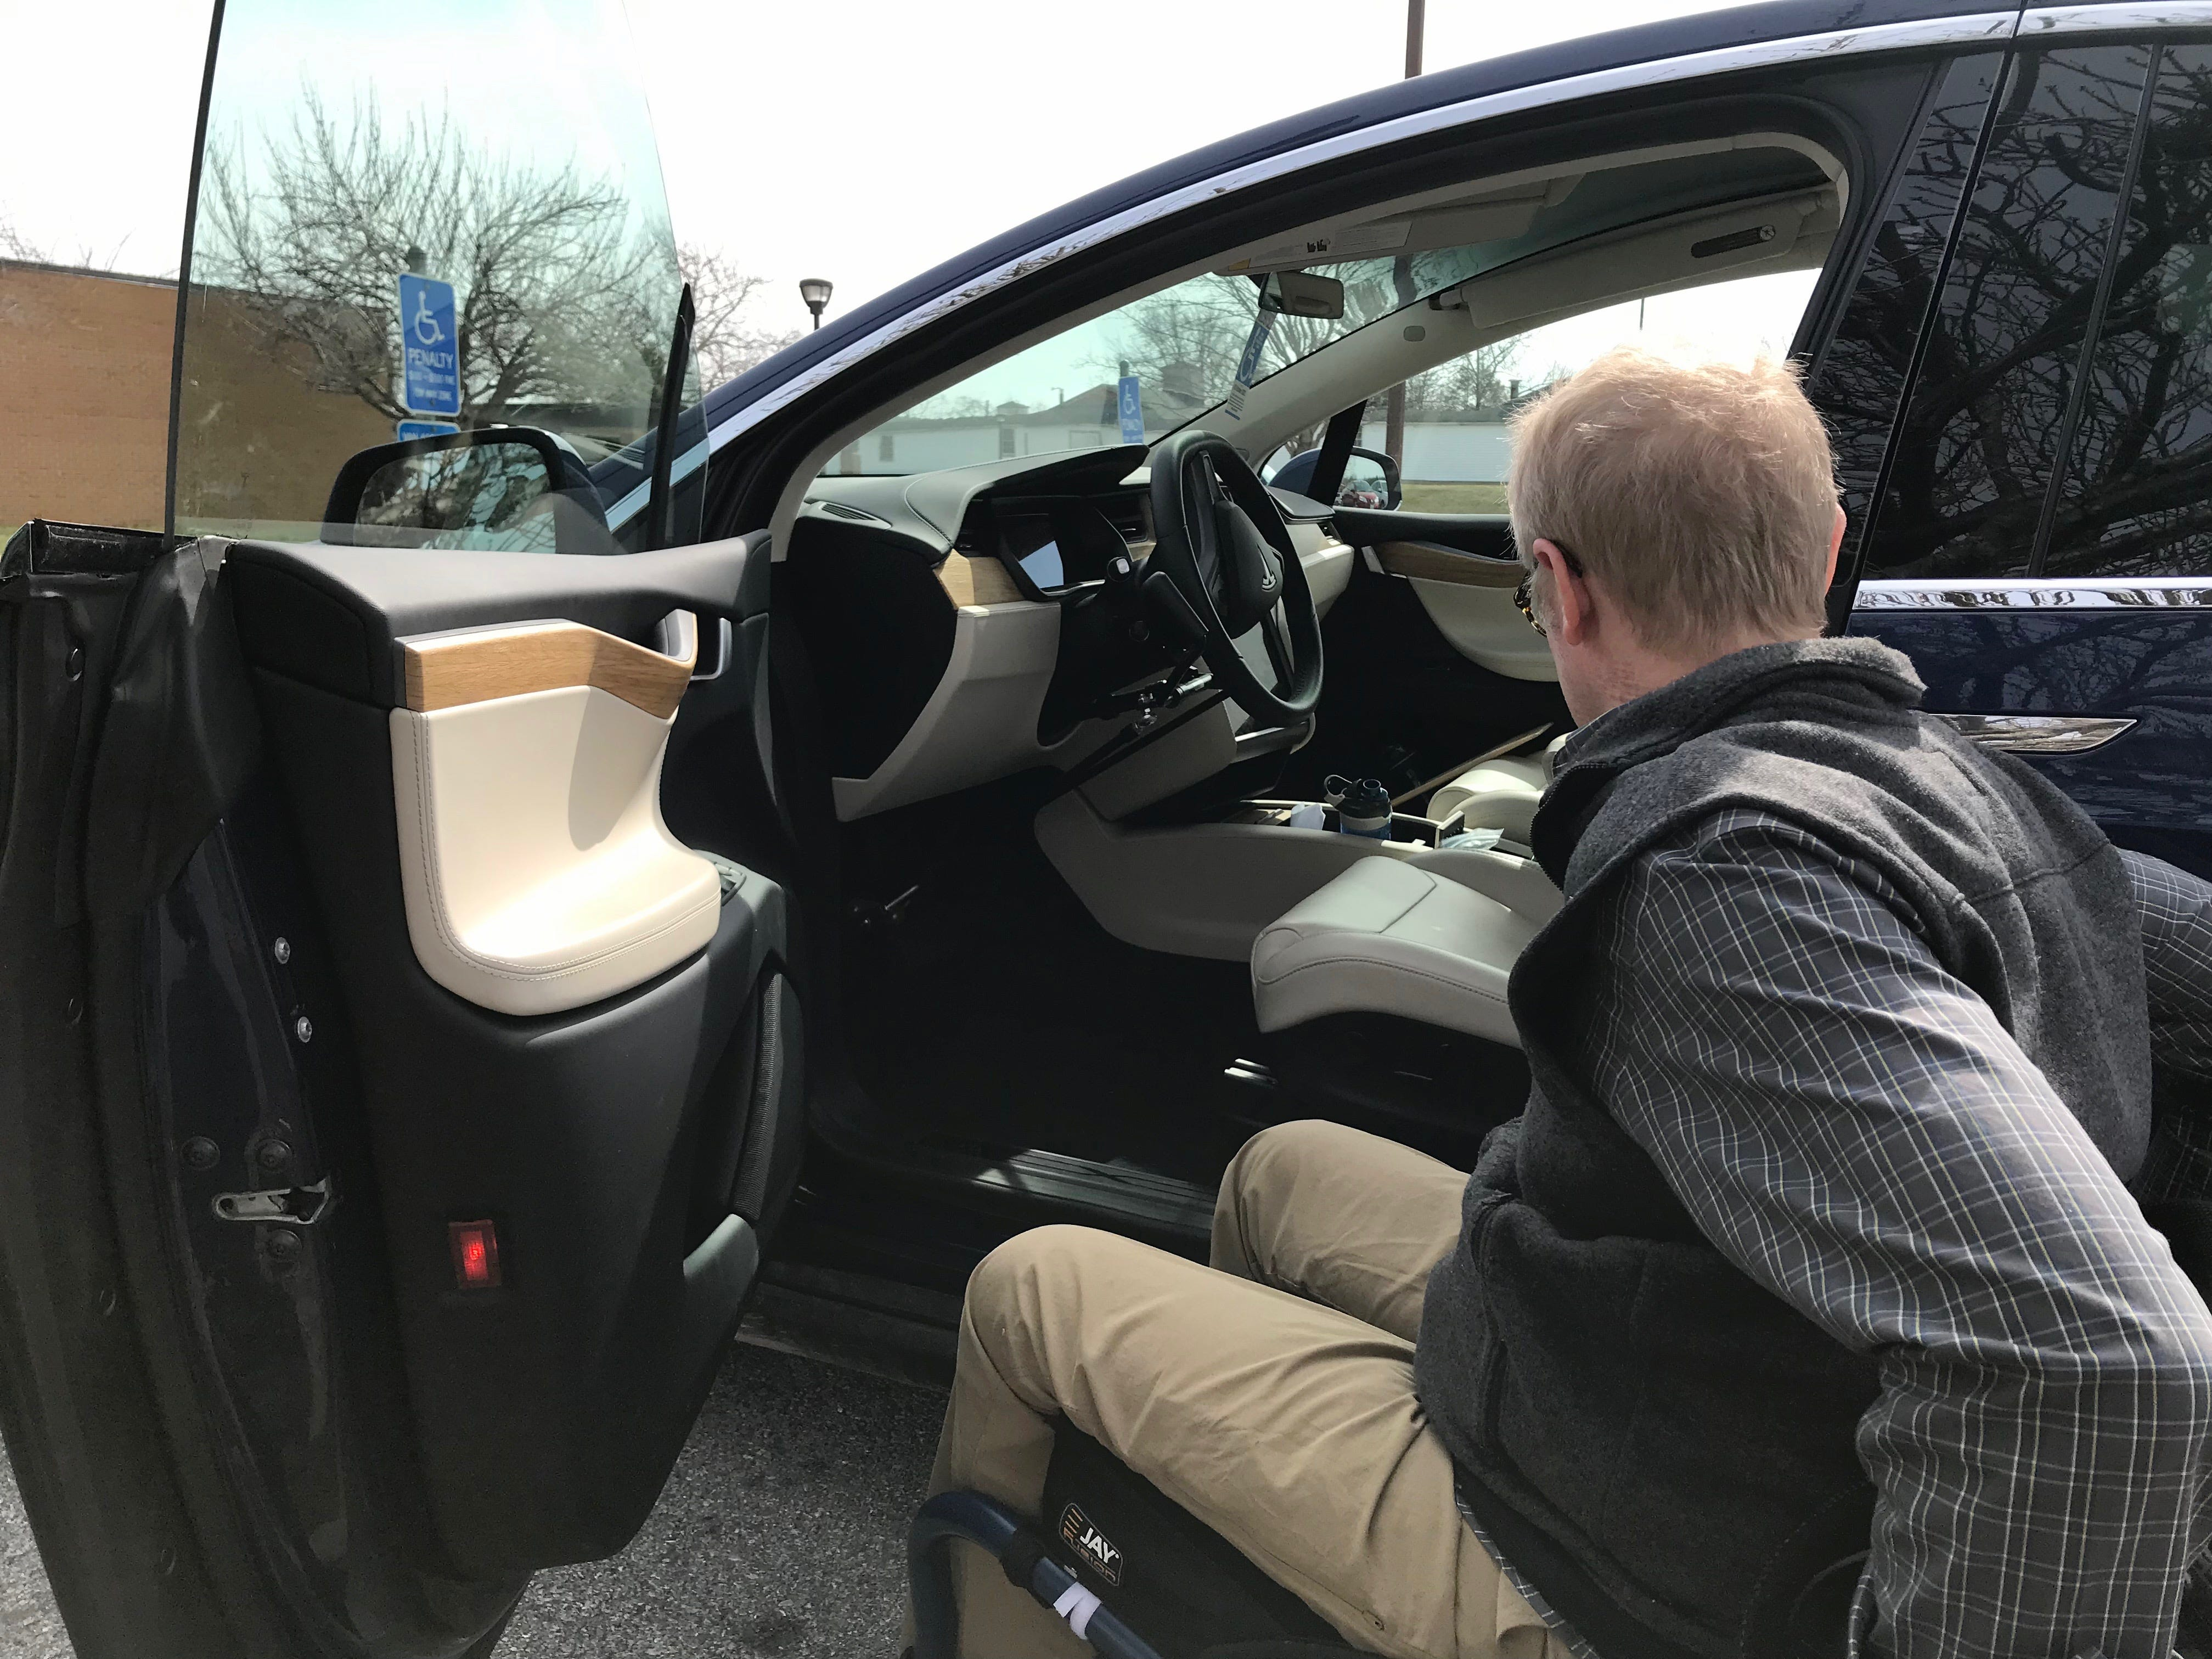 Dr. Robert Kyler receives physical and occupational therapies at Wilson Workforce and Rehabilitation Center in Fishersville. Photographed by his Tesla in the parking lot with Sonya Gasser, occupational therapist (not pictured), on Wednesday, March 20, 2019.